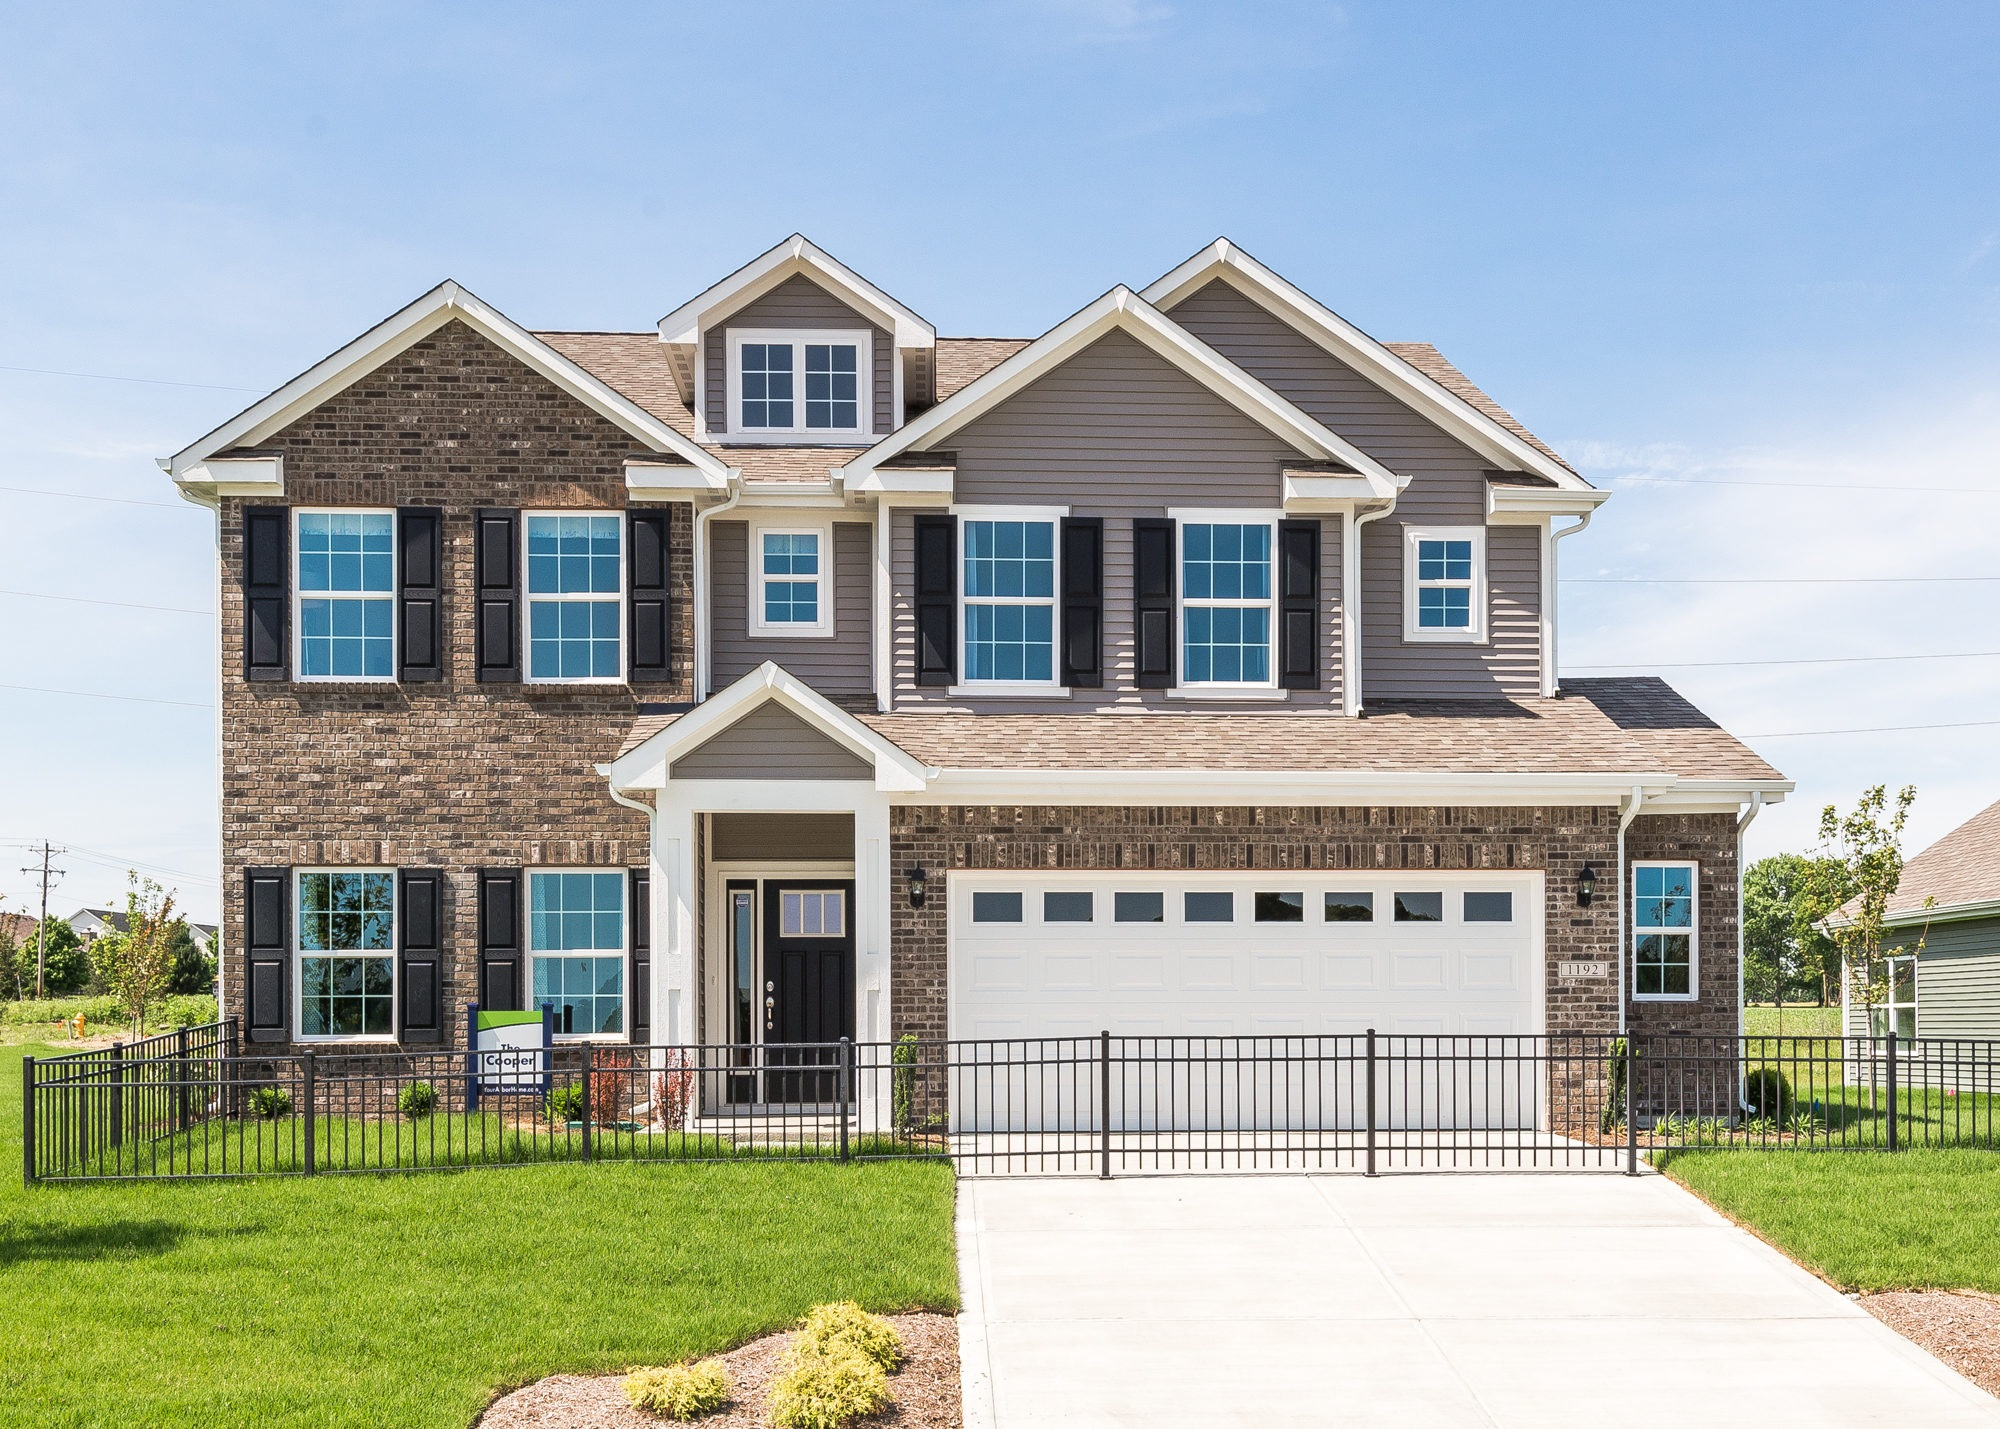 Things You Need To Check While Finalizing Home Building Deal